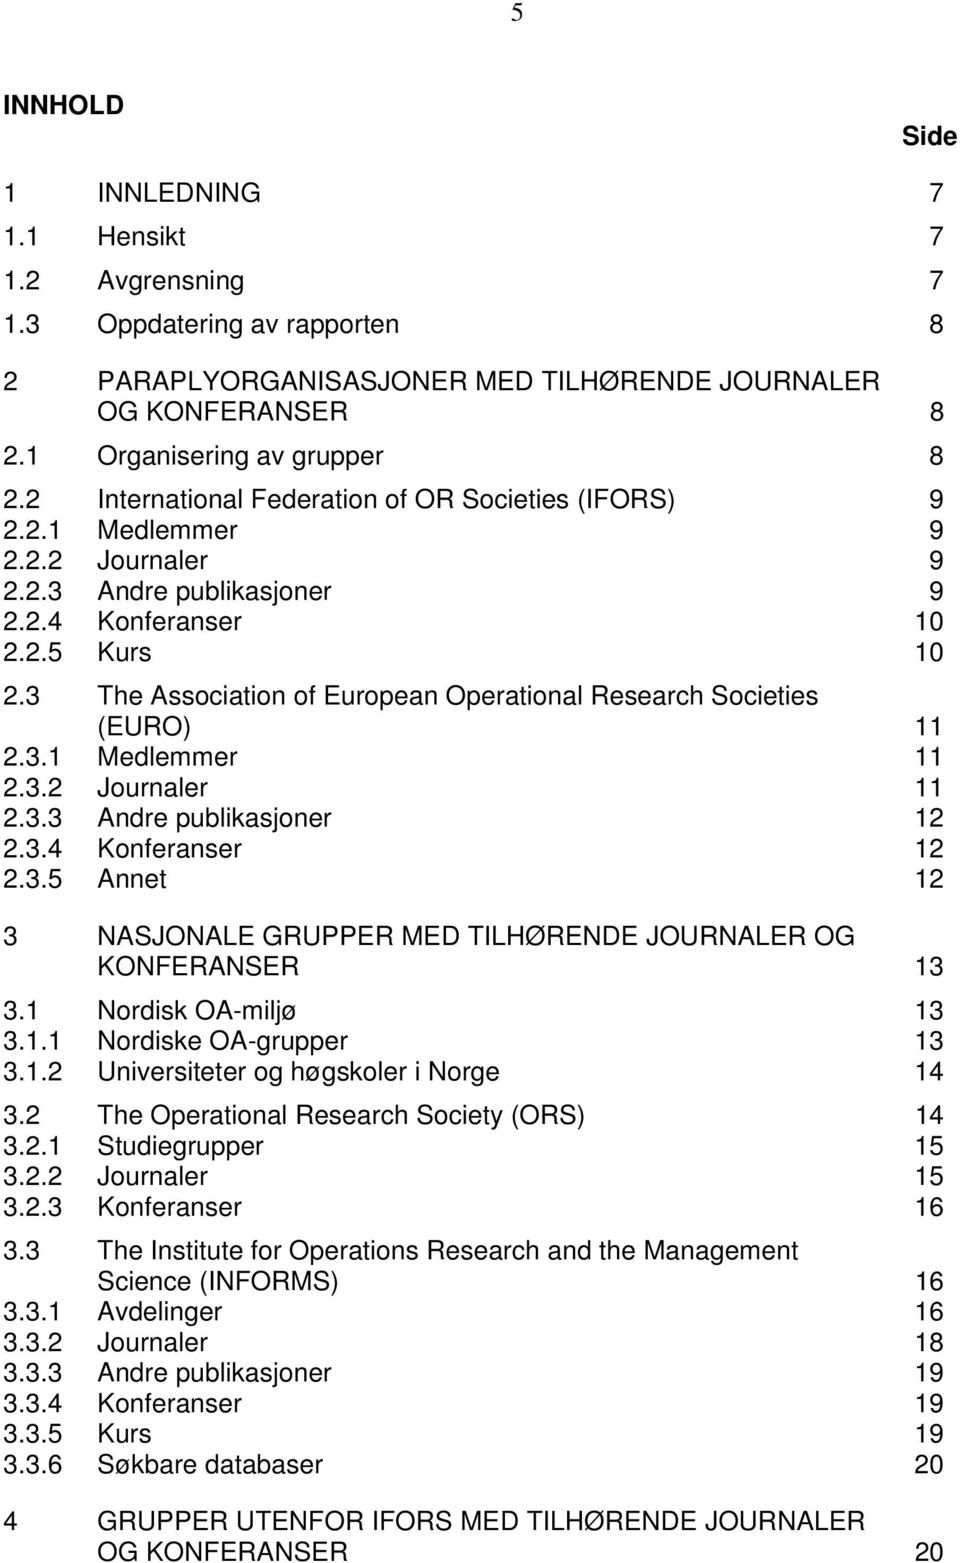 3 The Association of European Operational Research Societies (EURO) 11 2.3.1 Medlemmer 11 2.3.2 Journaler 11 2.3.3 Andre publikasjoner 12 2.3.4 Konferanser 12 2.3.5 Annet 12 3 NASJONALE GRUPPER MED TILHØRENDE JOURNALER OG KONFERANSER 13 3.